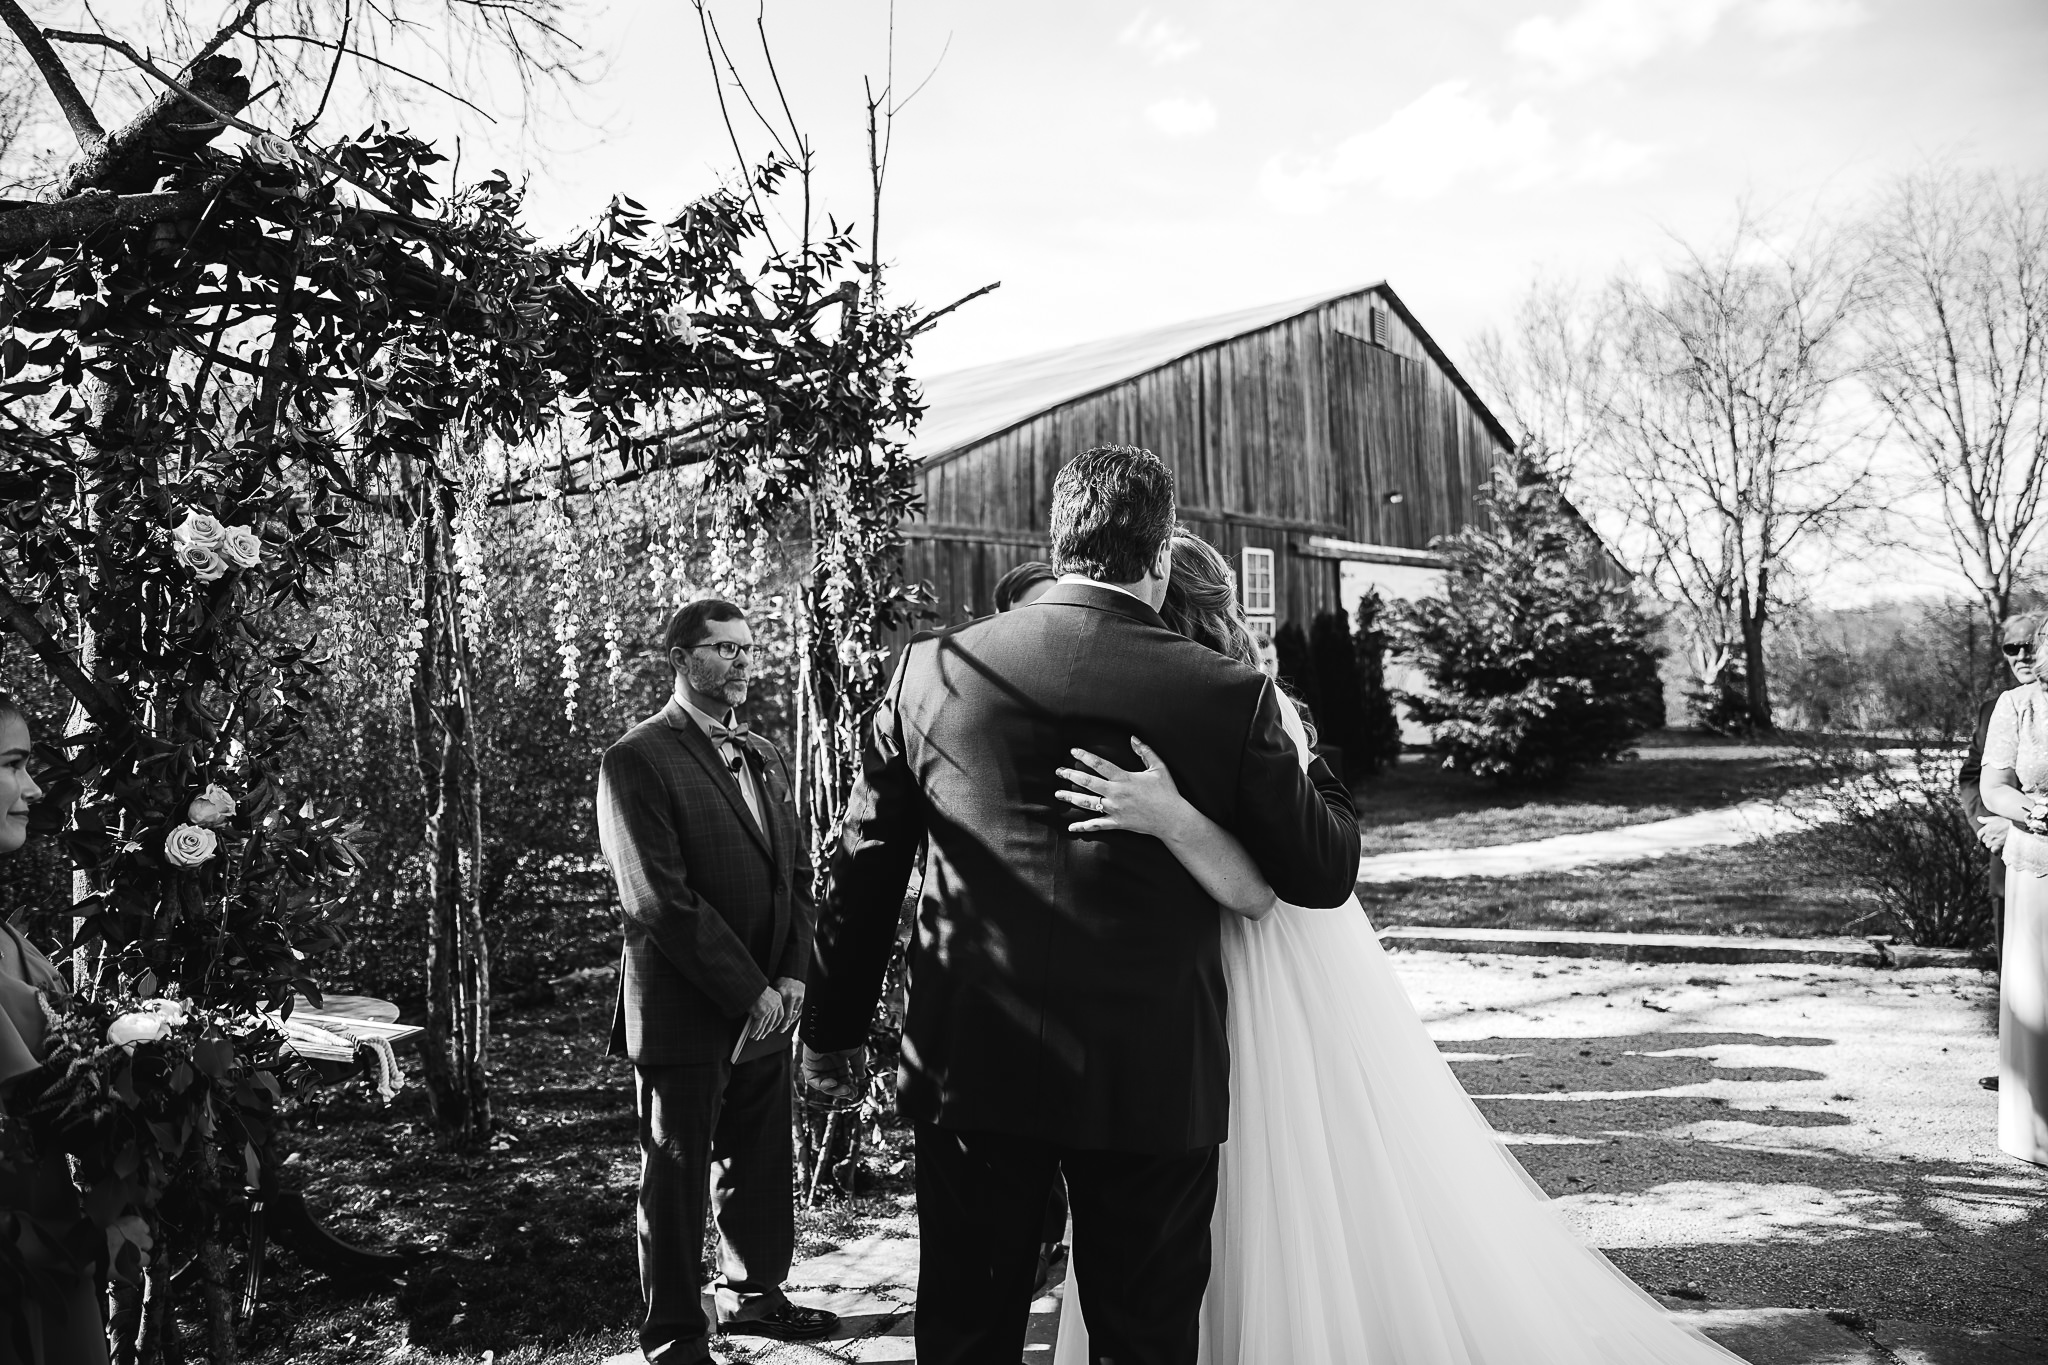 memphis-wedding-photographer-meadow-hill-farms-thewarmtharoundyou (28 of 93).jpg